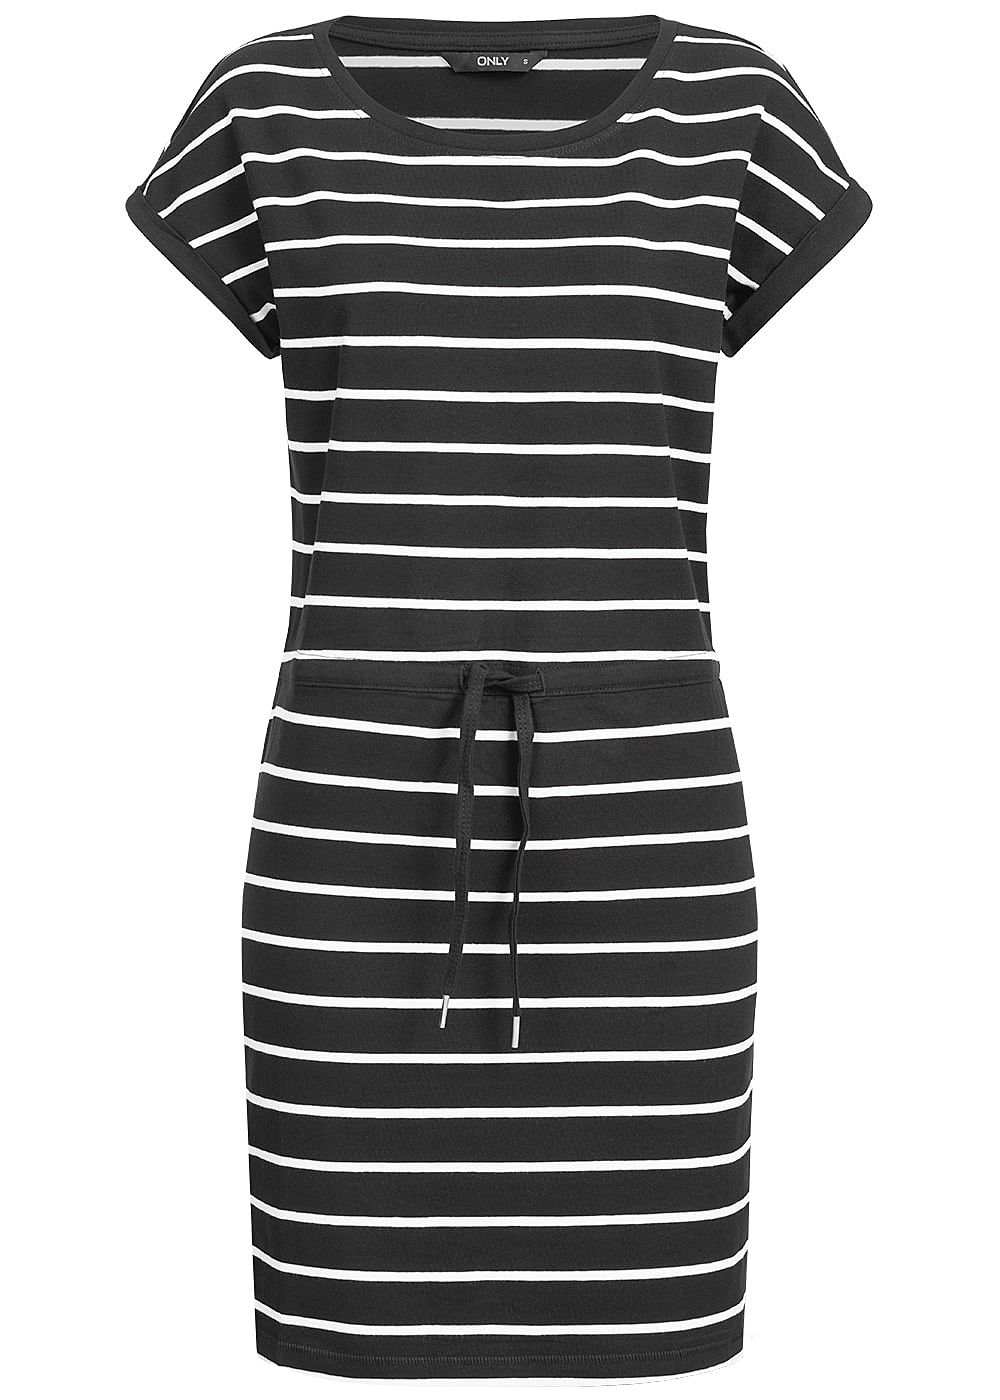 ONLY Damen Striped T-Shirt Dress NOOS schwarz weiss - Art.-Nr.: 19031038-XS-BK